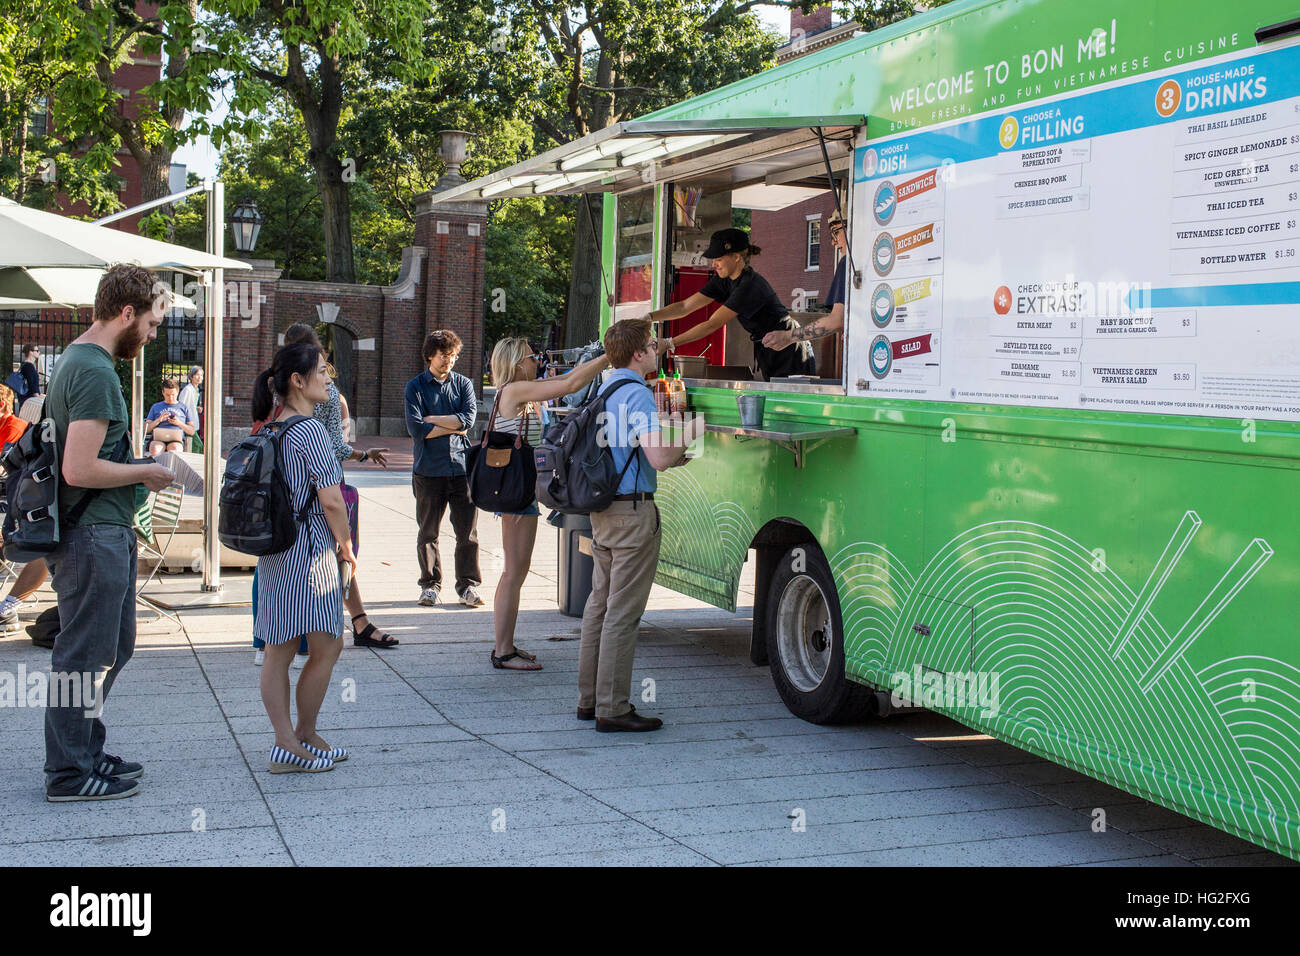 People buying food at a food truck in Harvard Square, Cambridge, MA - Stock Image